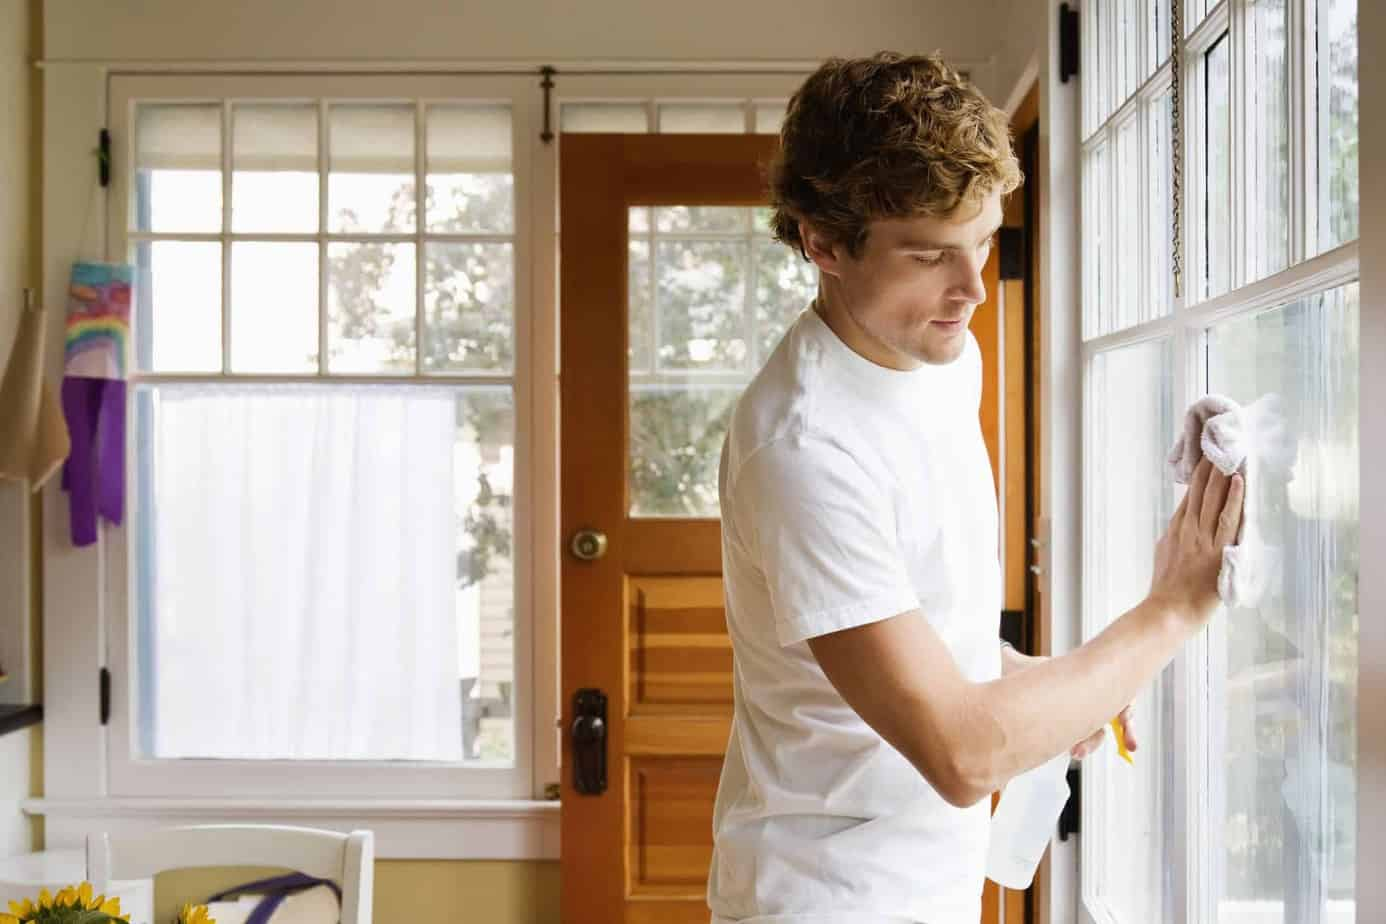 Make Your Windows Sparkling Clean Inside and Out